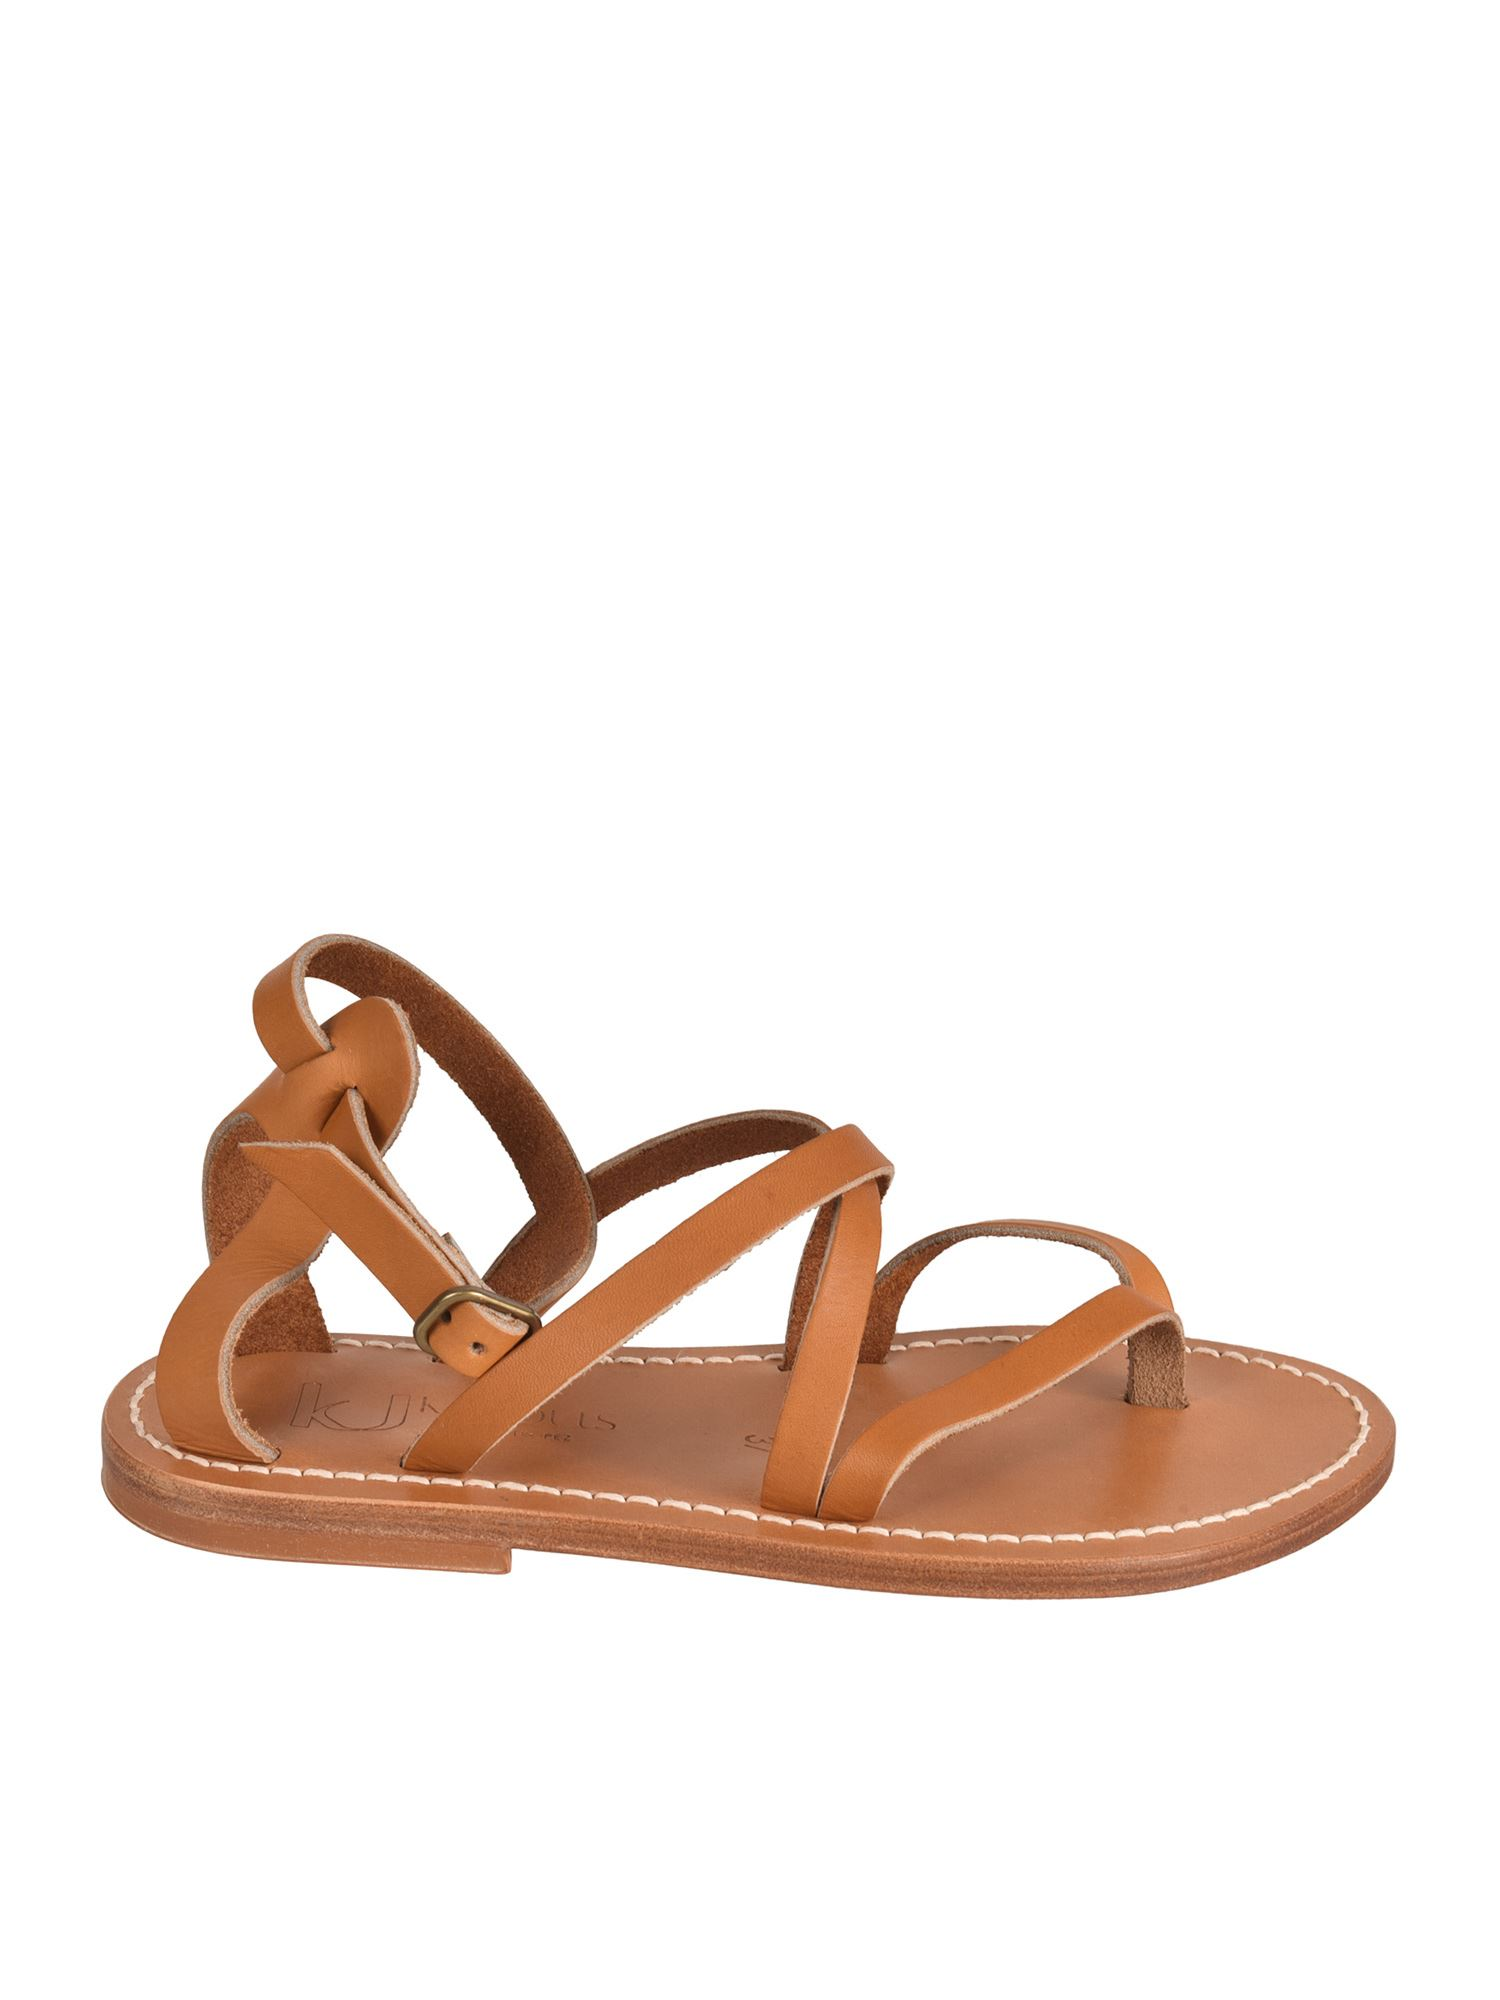 K.jacques EPICURE SANDALS IN NATUREL COLOR